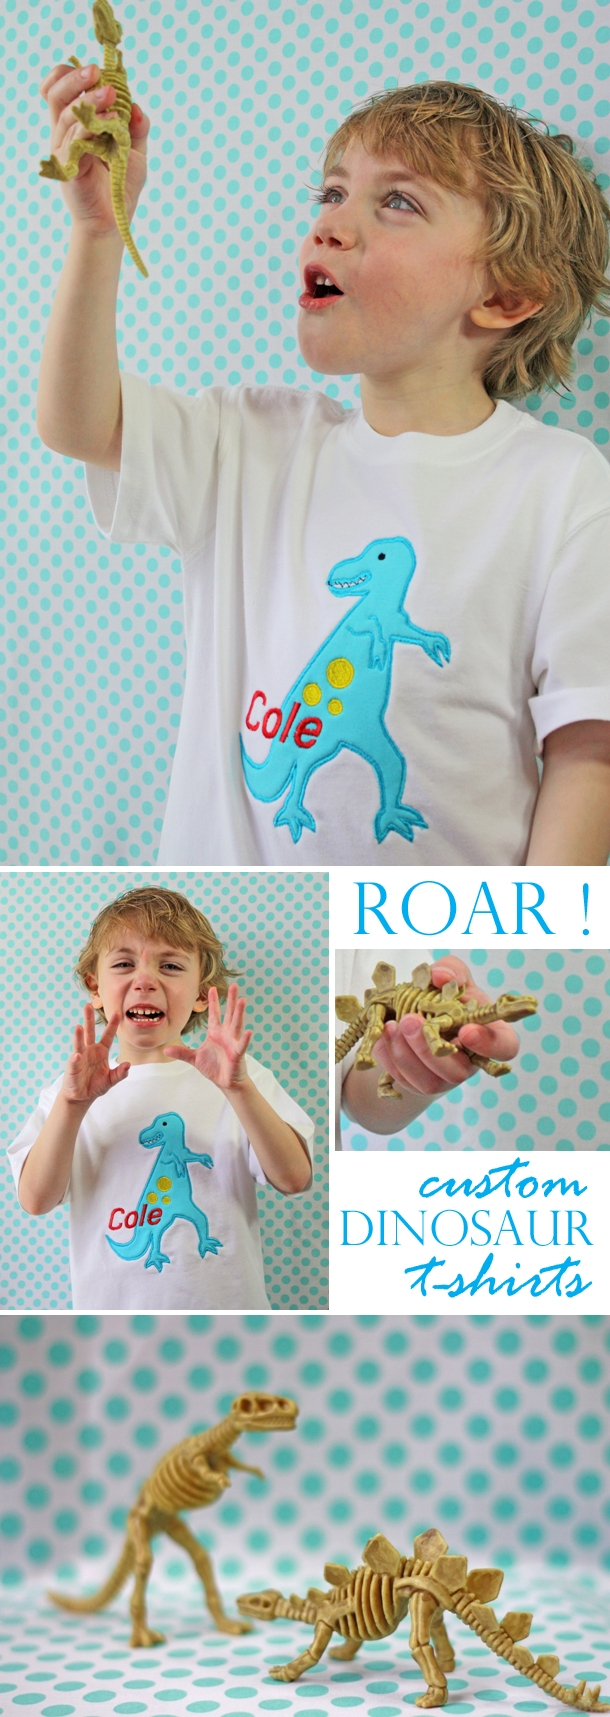 The celebration shoppe custom dinosaur monogram t shirt1